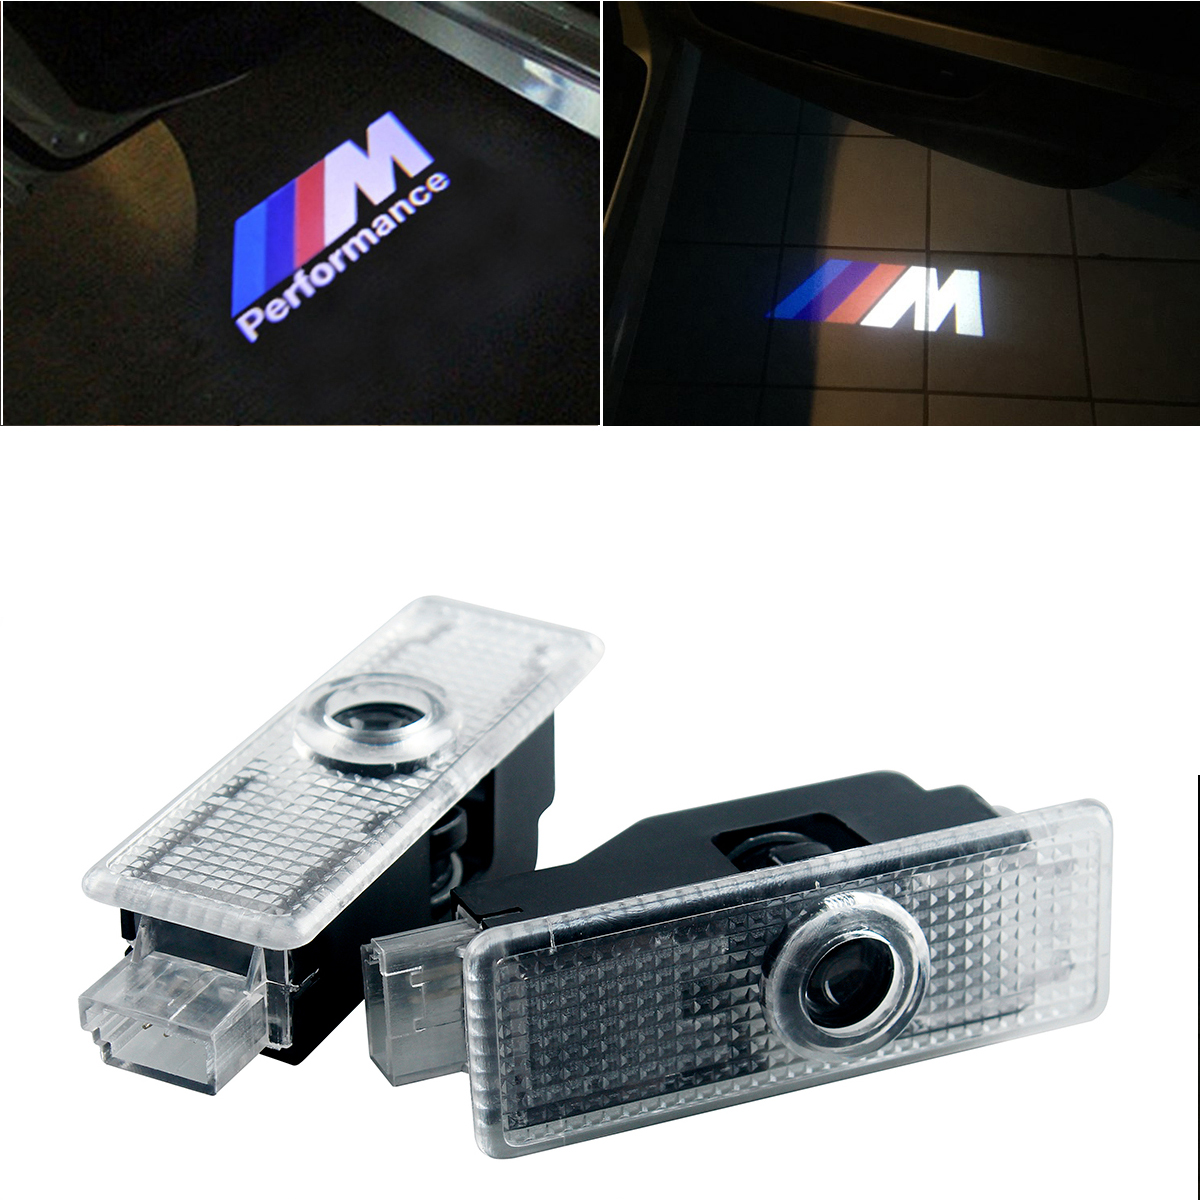 LED Car Door Courtesy Laser Projector Logo Light For Bmw M Performance E90 F10 F30 E60 E92 X1 X3 X4 X5 E61 E93 E63 F01 GT 528i